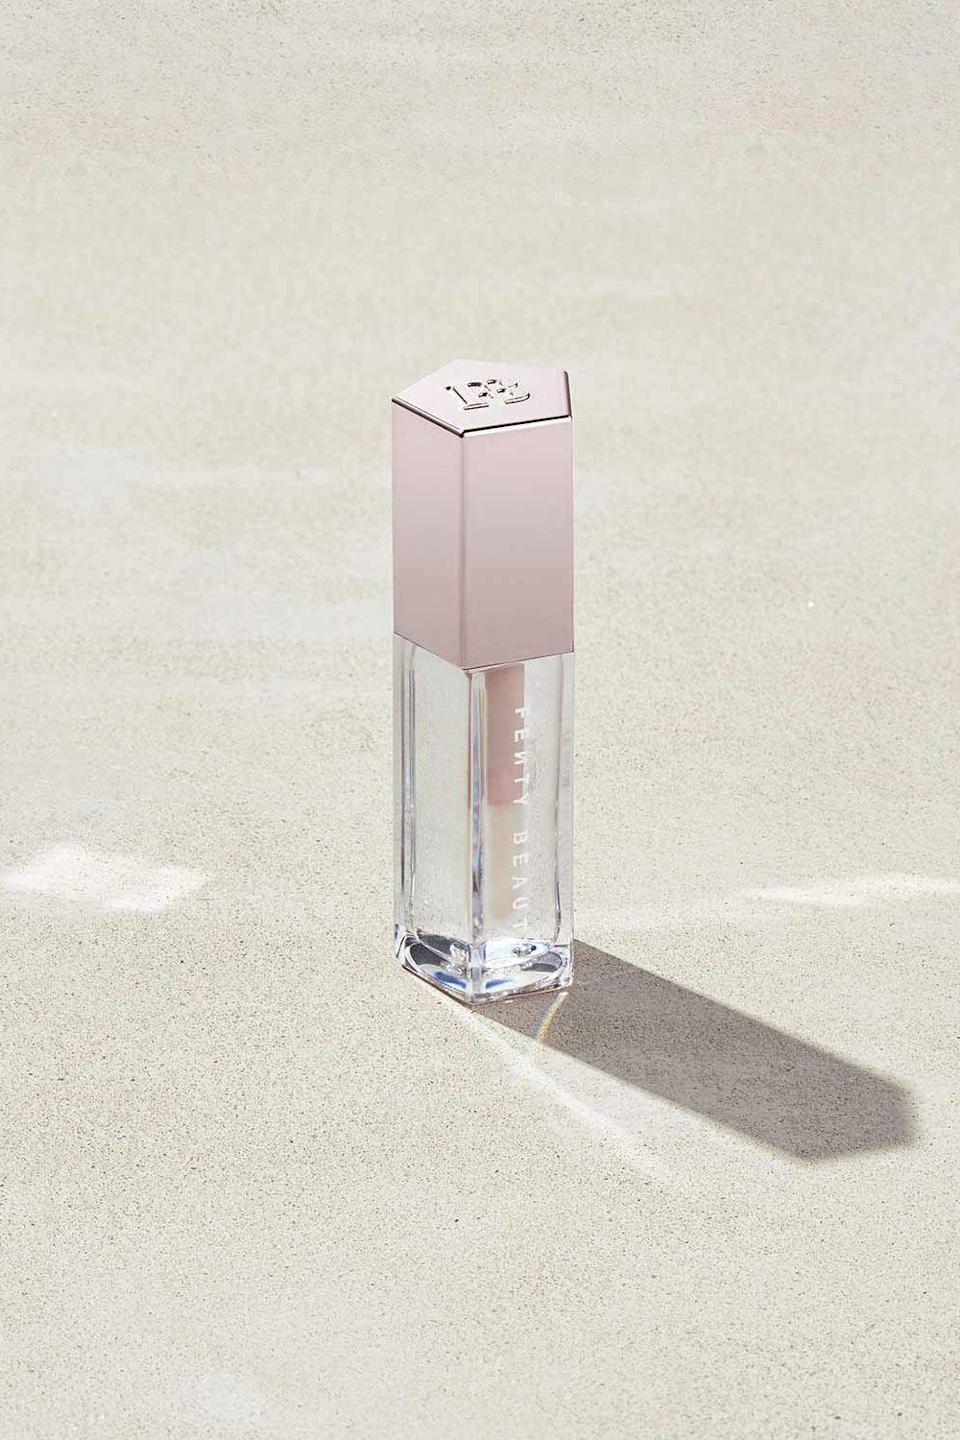 """<p><strong>Fenty Beauty</strong></p><p>fentybeauty.com</p><p><a href=""""https://go.redirectingat.com?id=74968X1596630&url=https%3A%2F%2Fwww.fentybeauty.com%2Fgloss-bomb-universal-lip-luminizer%2FFB50001.html%3Fdwvar_FB50001_color%3DFB5016%26cgid%3Dmakeup-lip-gloss&sref=https%3A%2F%2Fwww.seventeen.com%2Fbeauty%2Fg34398305%2Ffenty-beauty-sale-october-2020%2F"""" rel=""""nofollow noopener"""" target=""""_blank"""" data-ylk=""""slk:SHOP IT"""" class=""""link rapid-noclick-resp"""">SHOP IT </a></p><p><strong><del>$19</del> $12.82 (33% off)</strong></p><p>Available in a handful of colors, the Gloss Bomb Lip Luminizer will give your lips a nice, glossy finish. This formula is infused with shea butter to keep your lips hydrated.</p>"""